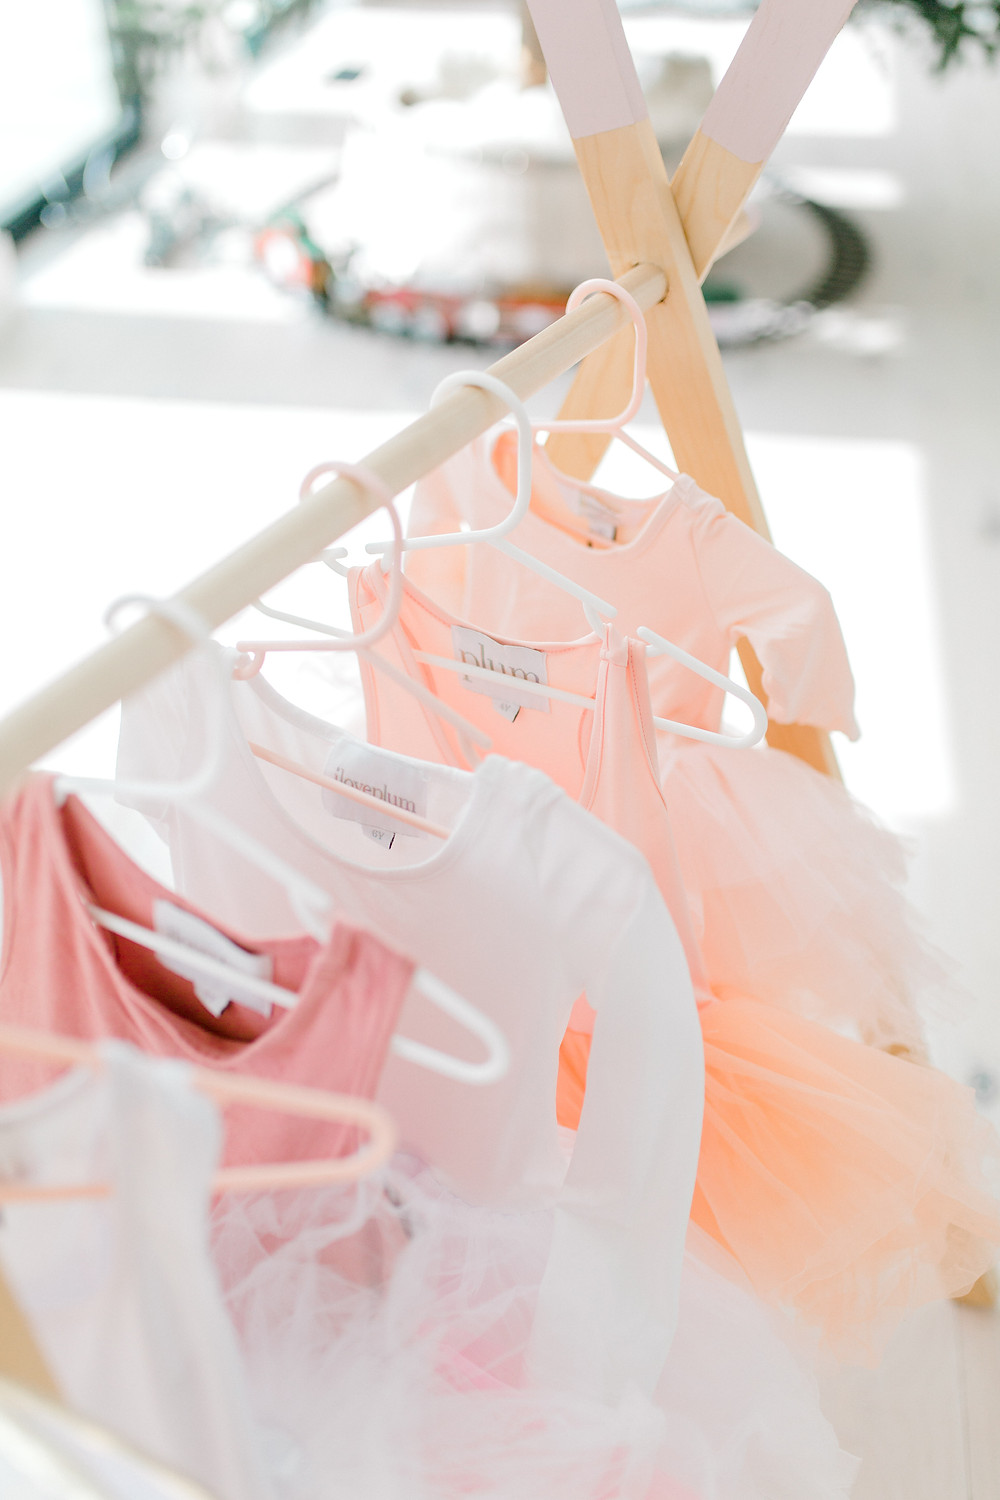 a clothing rack stands in a room with pink, peach and white tutu's